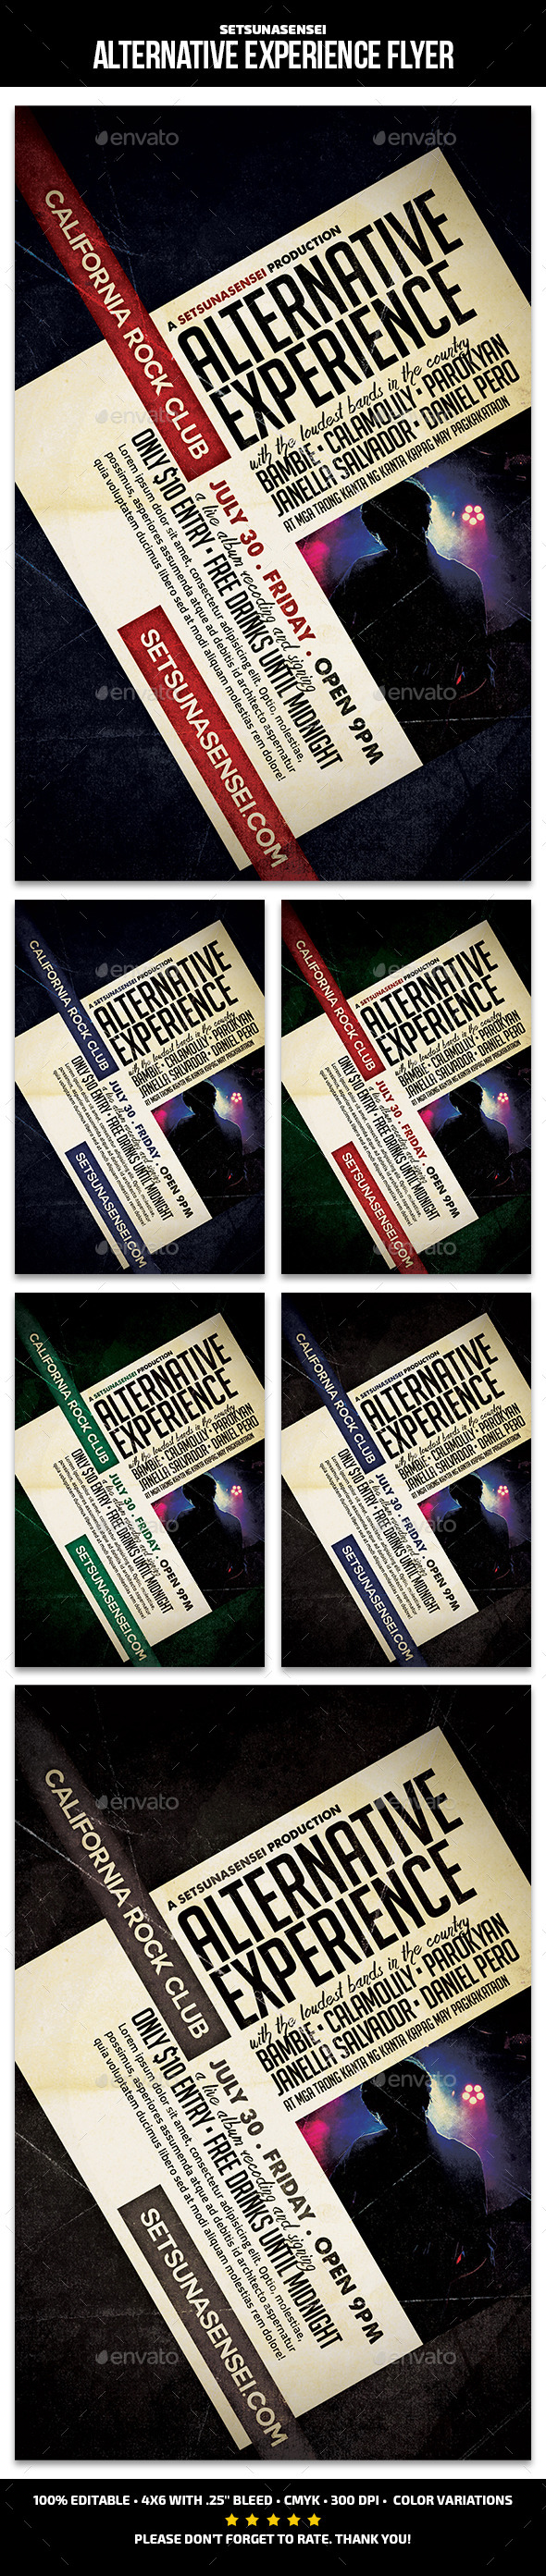 Alternative Experience Flyer - Concerts Events